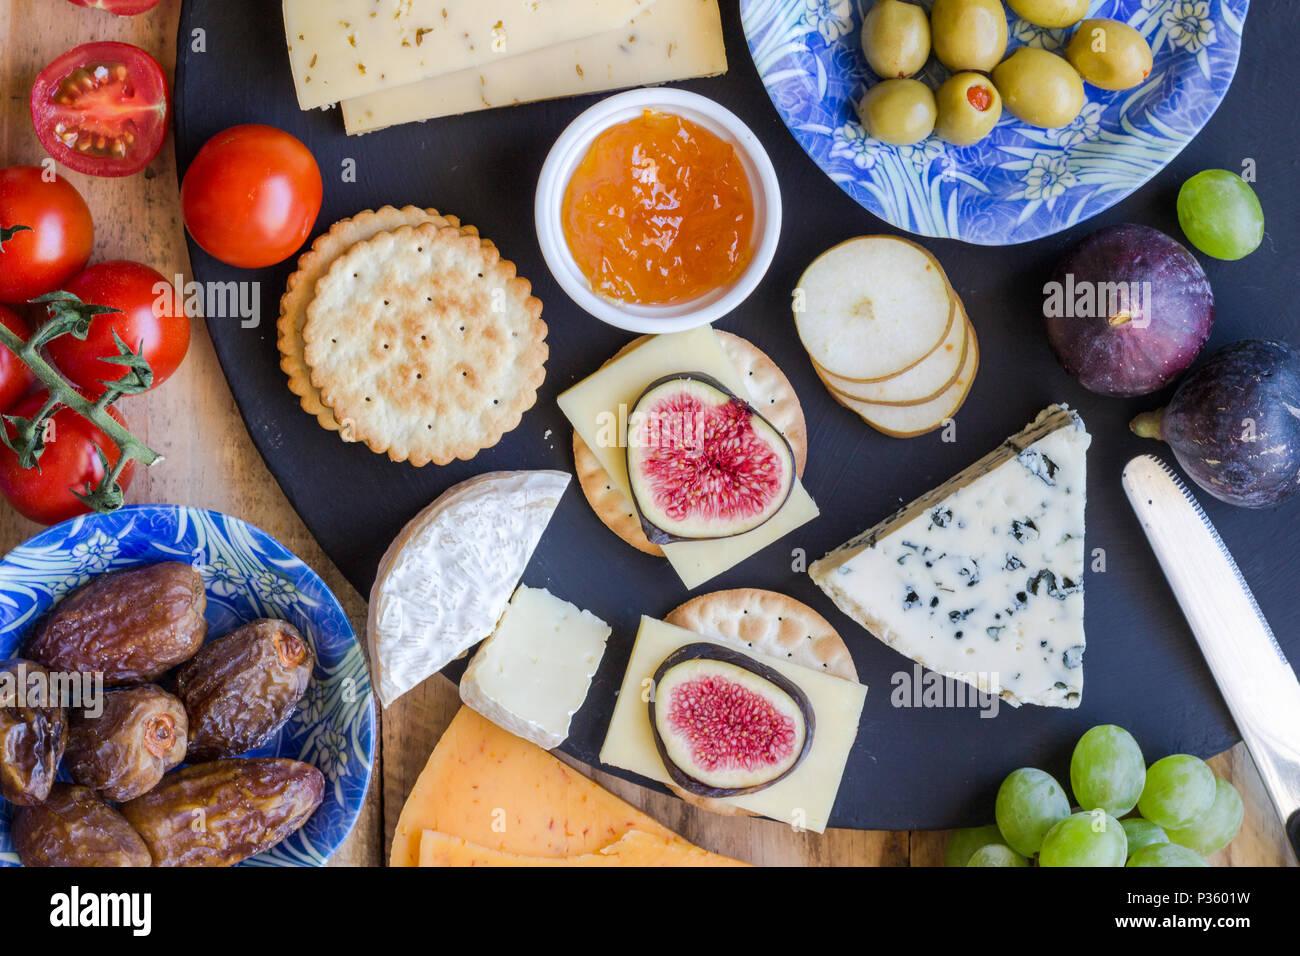 Cheese board close up with assortment of cheese, crackers, fruit and olives close up top view - Stock Image